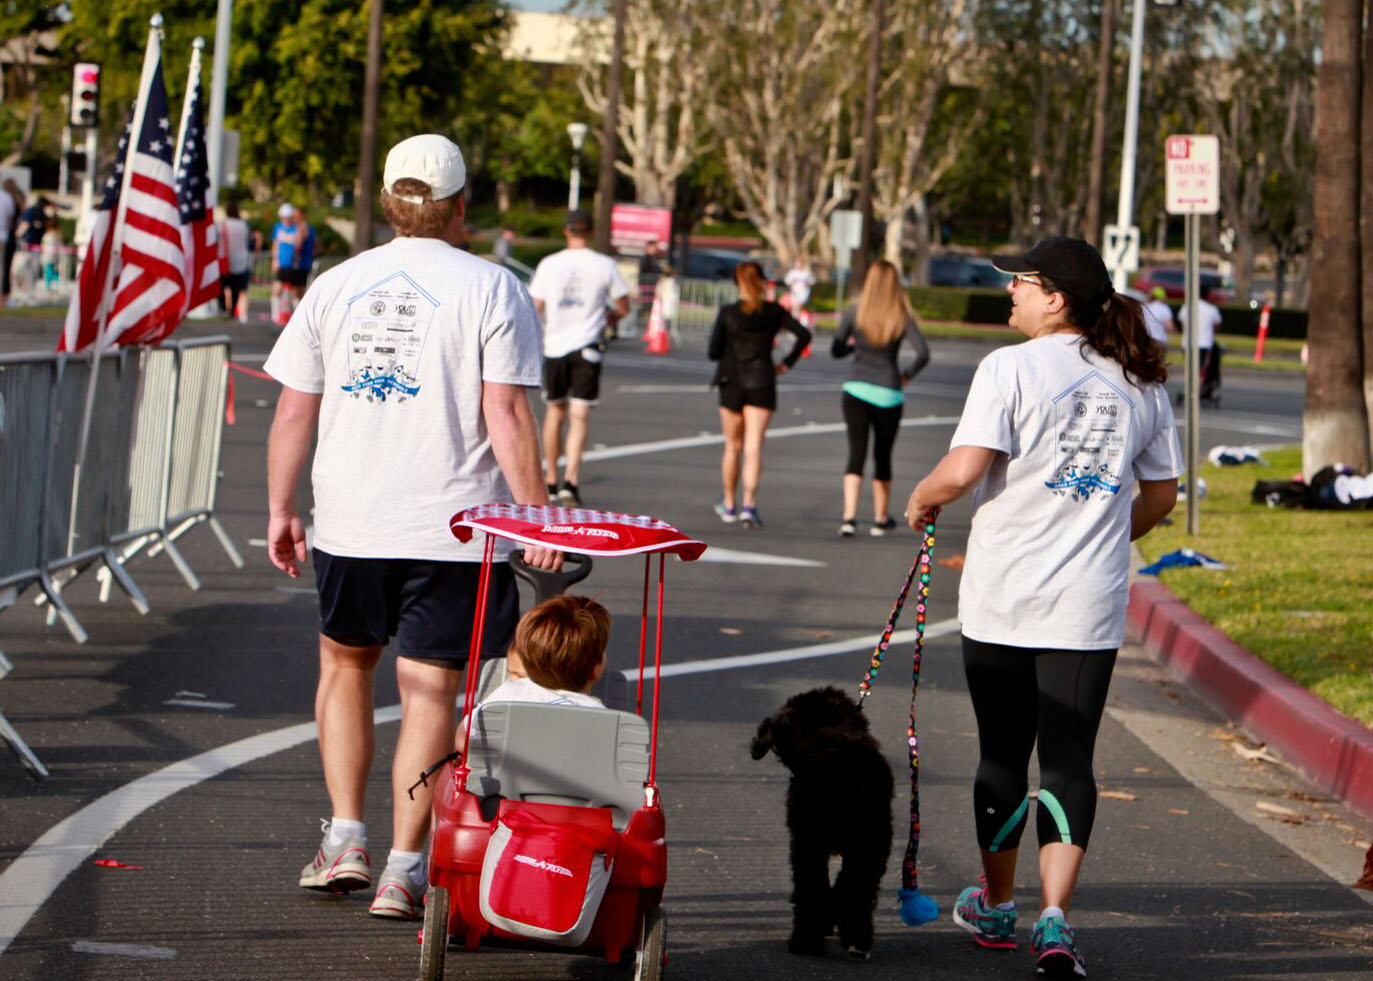 Resolve for fitness and fun and raise money for schools - Visit Stu News Newport to learn about achieving your New Year's resolution to exercise with your family with the Family Mile or 5k Family Walk.